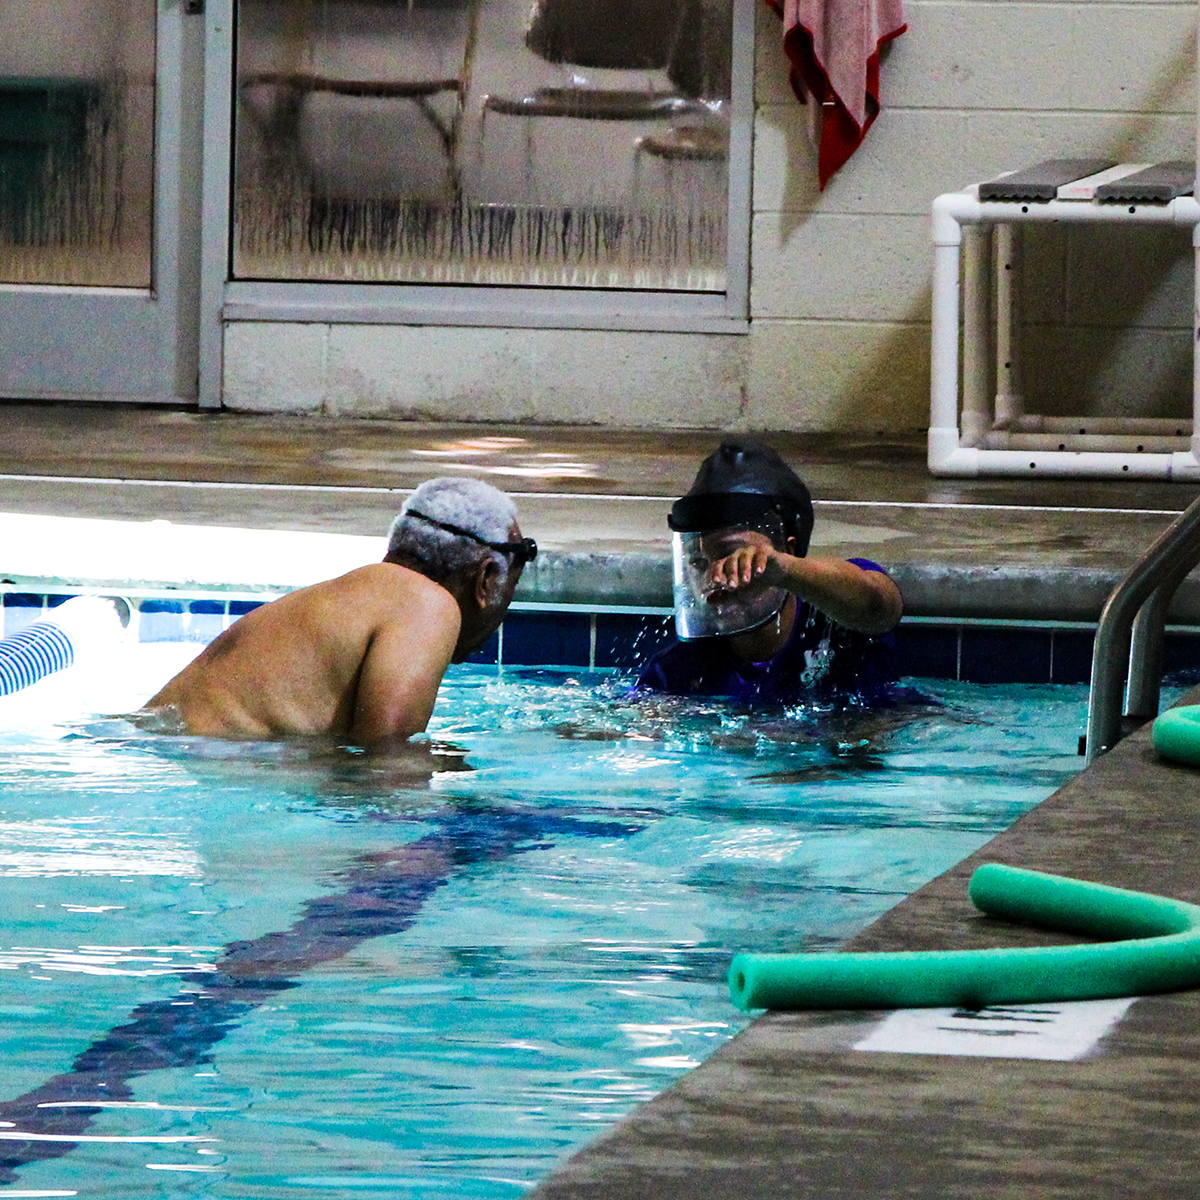 Instructor demonstrating a swimming stroke to student